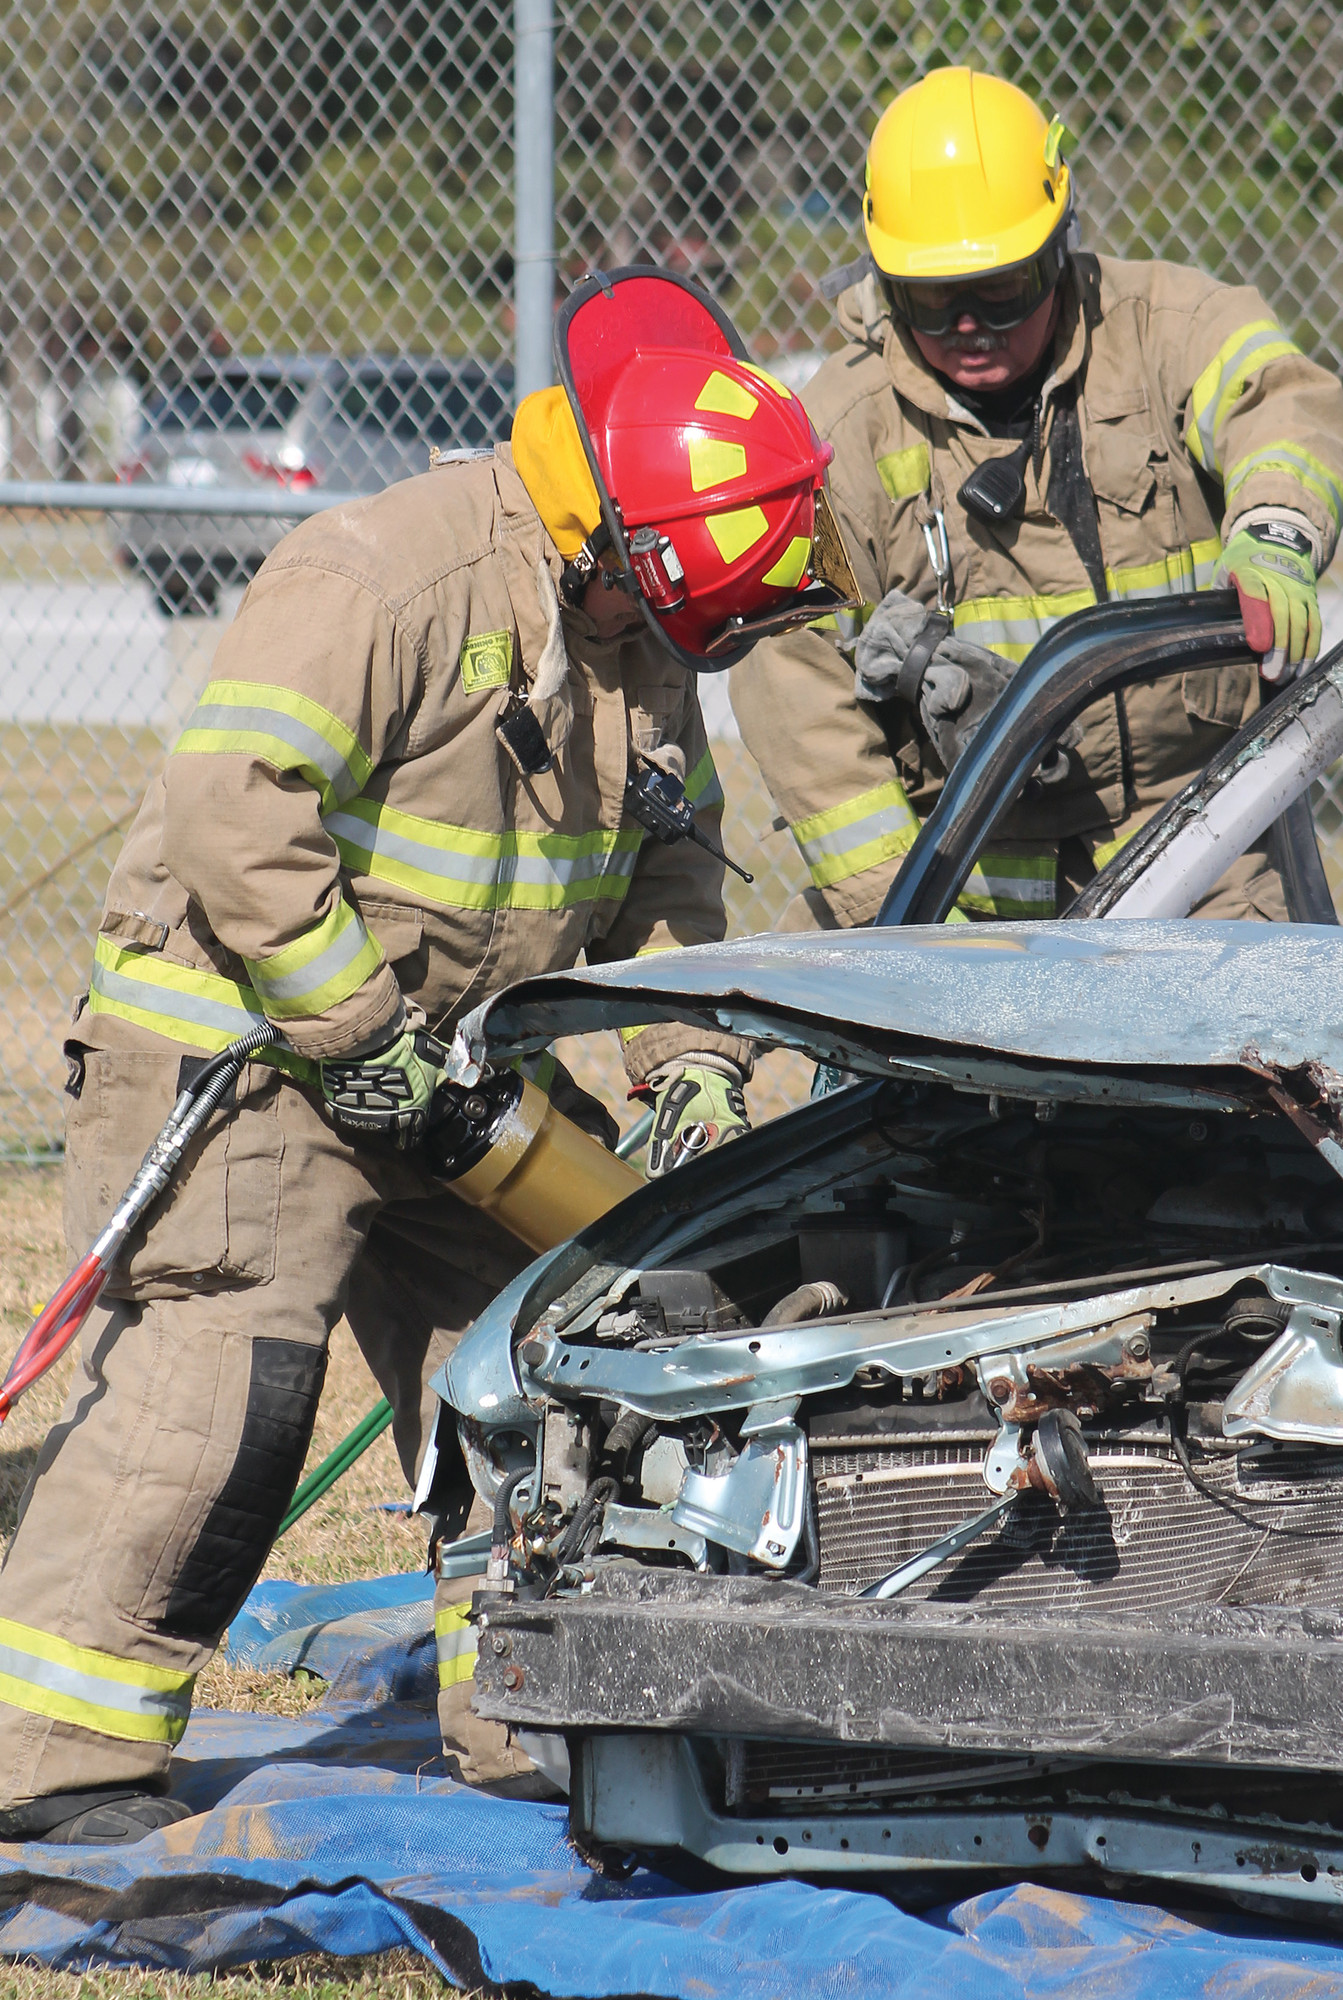 Firefighters with the Clarendon County Fire Department demonstrated how difficult it is to extricate individuals trapped in a vehicle.